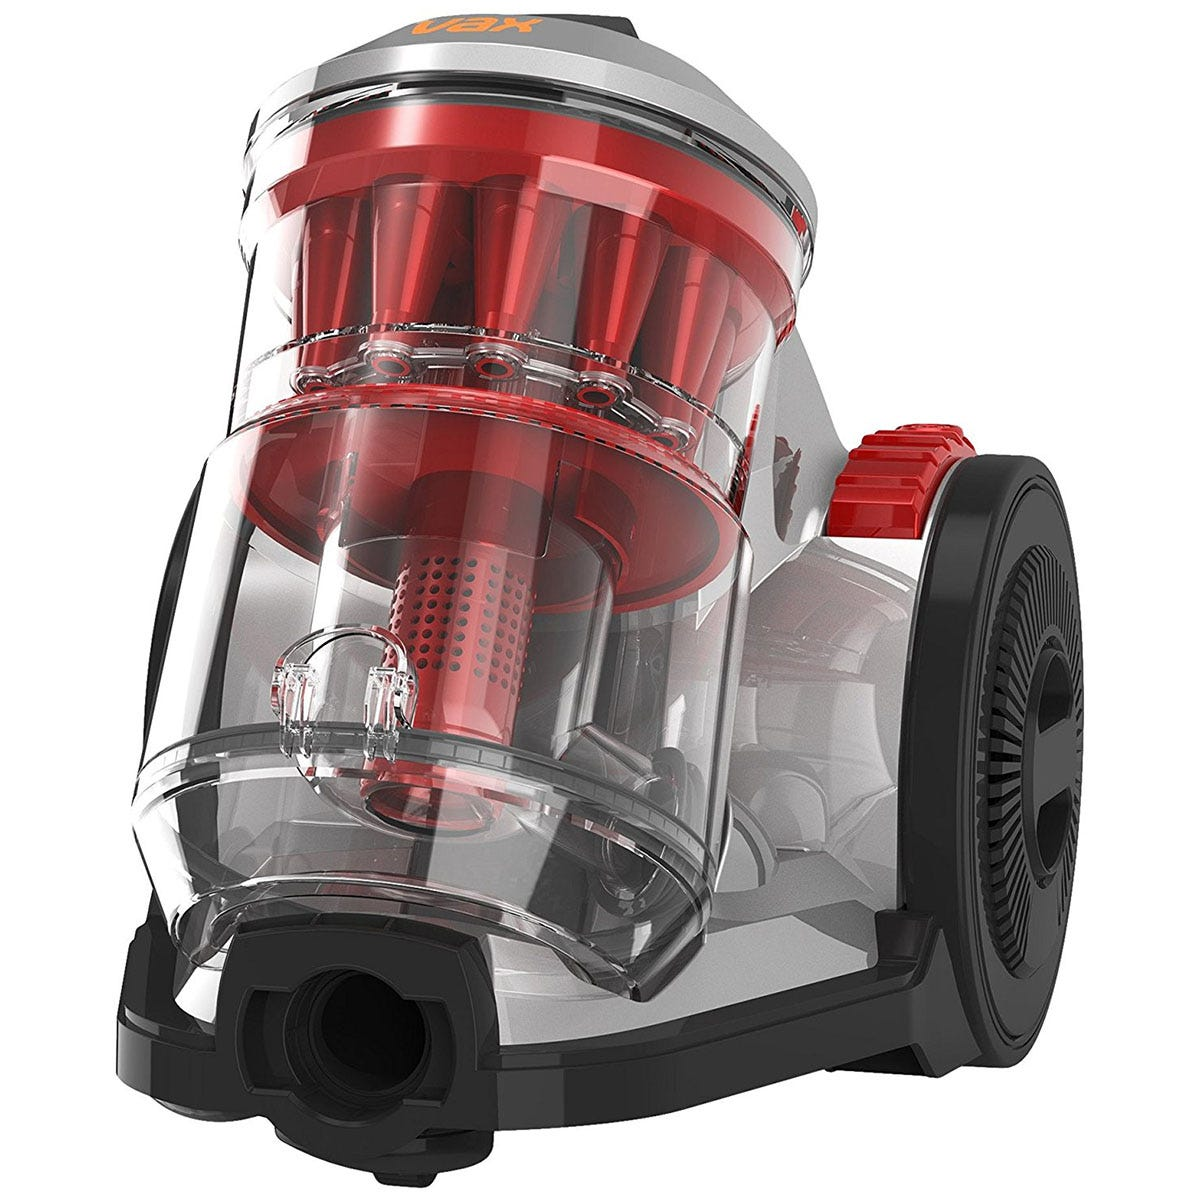 Vax CCQSAV1T1 Air Total Home Bagless 1.5L Cylinder 900W Vacuum Cleaner- Silver/Red